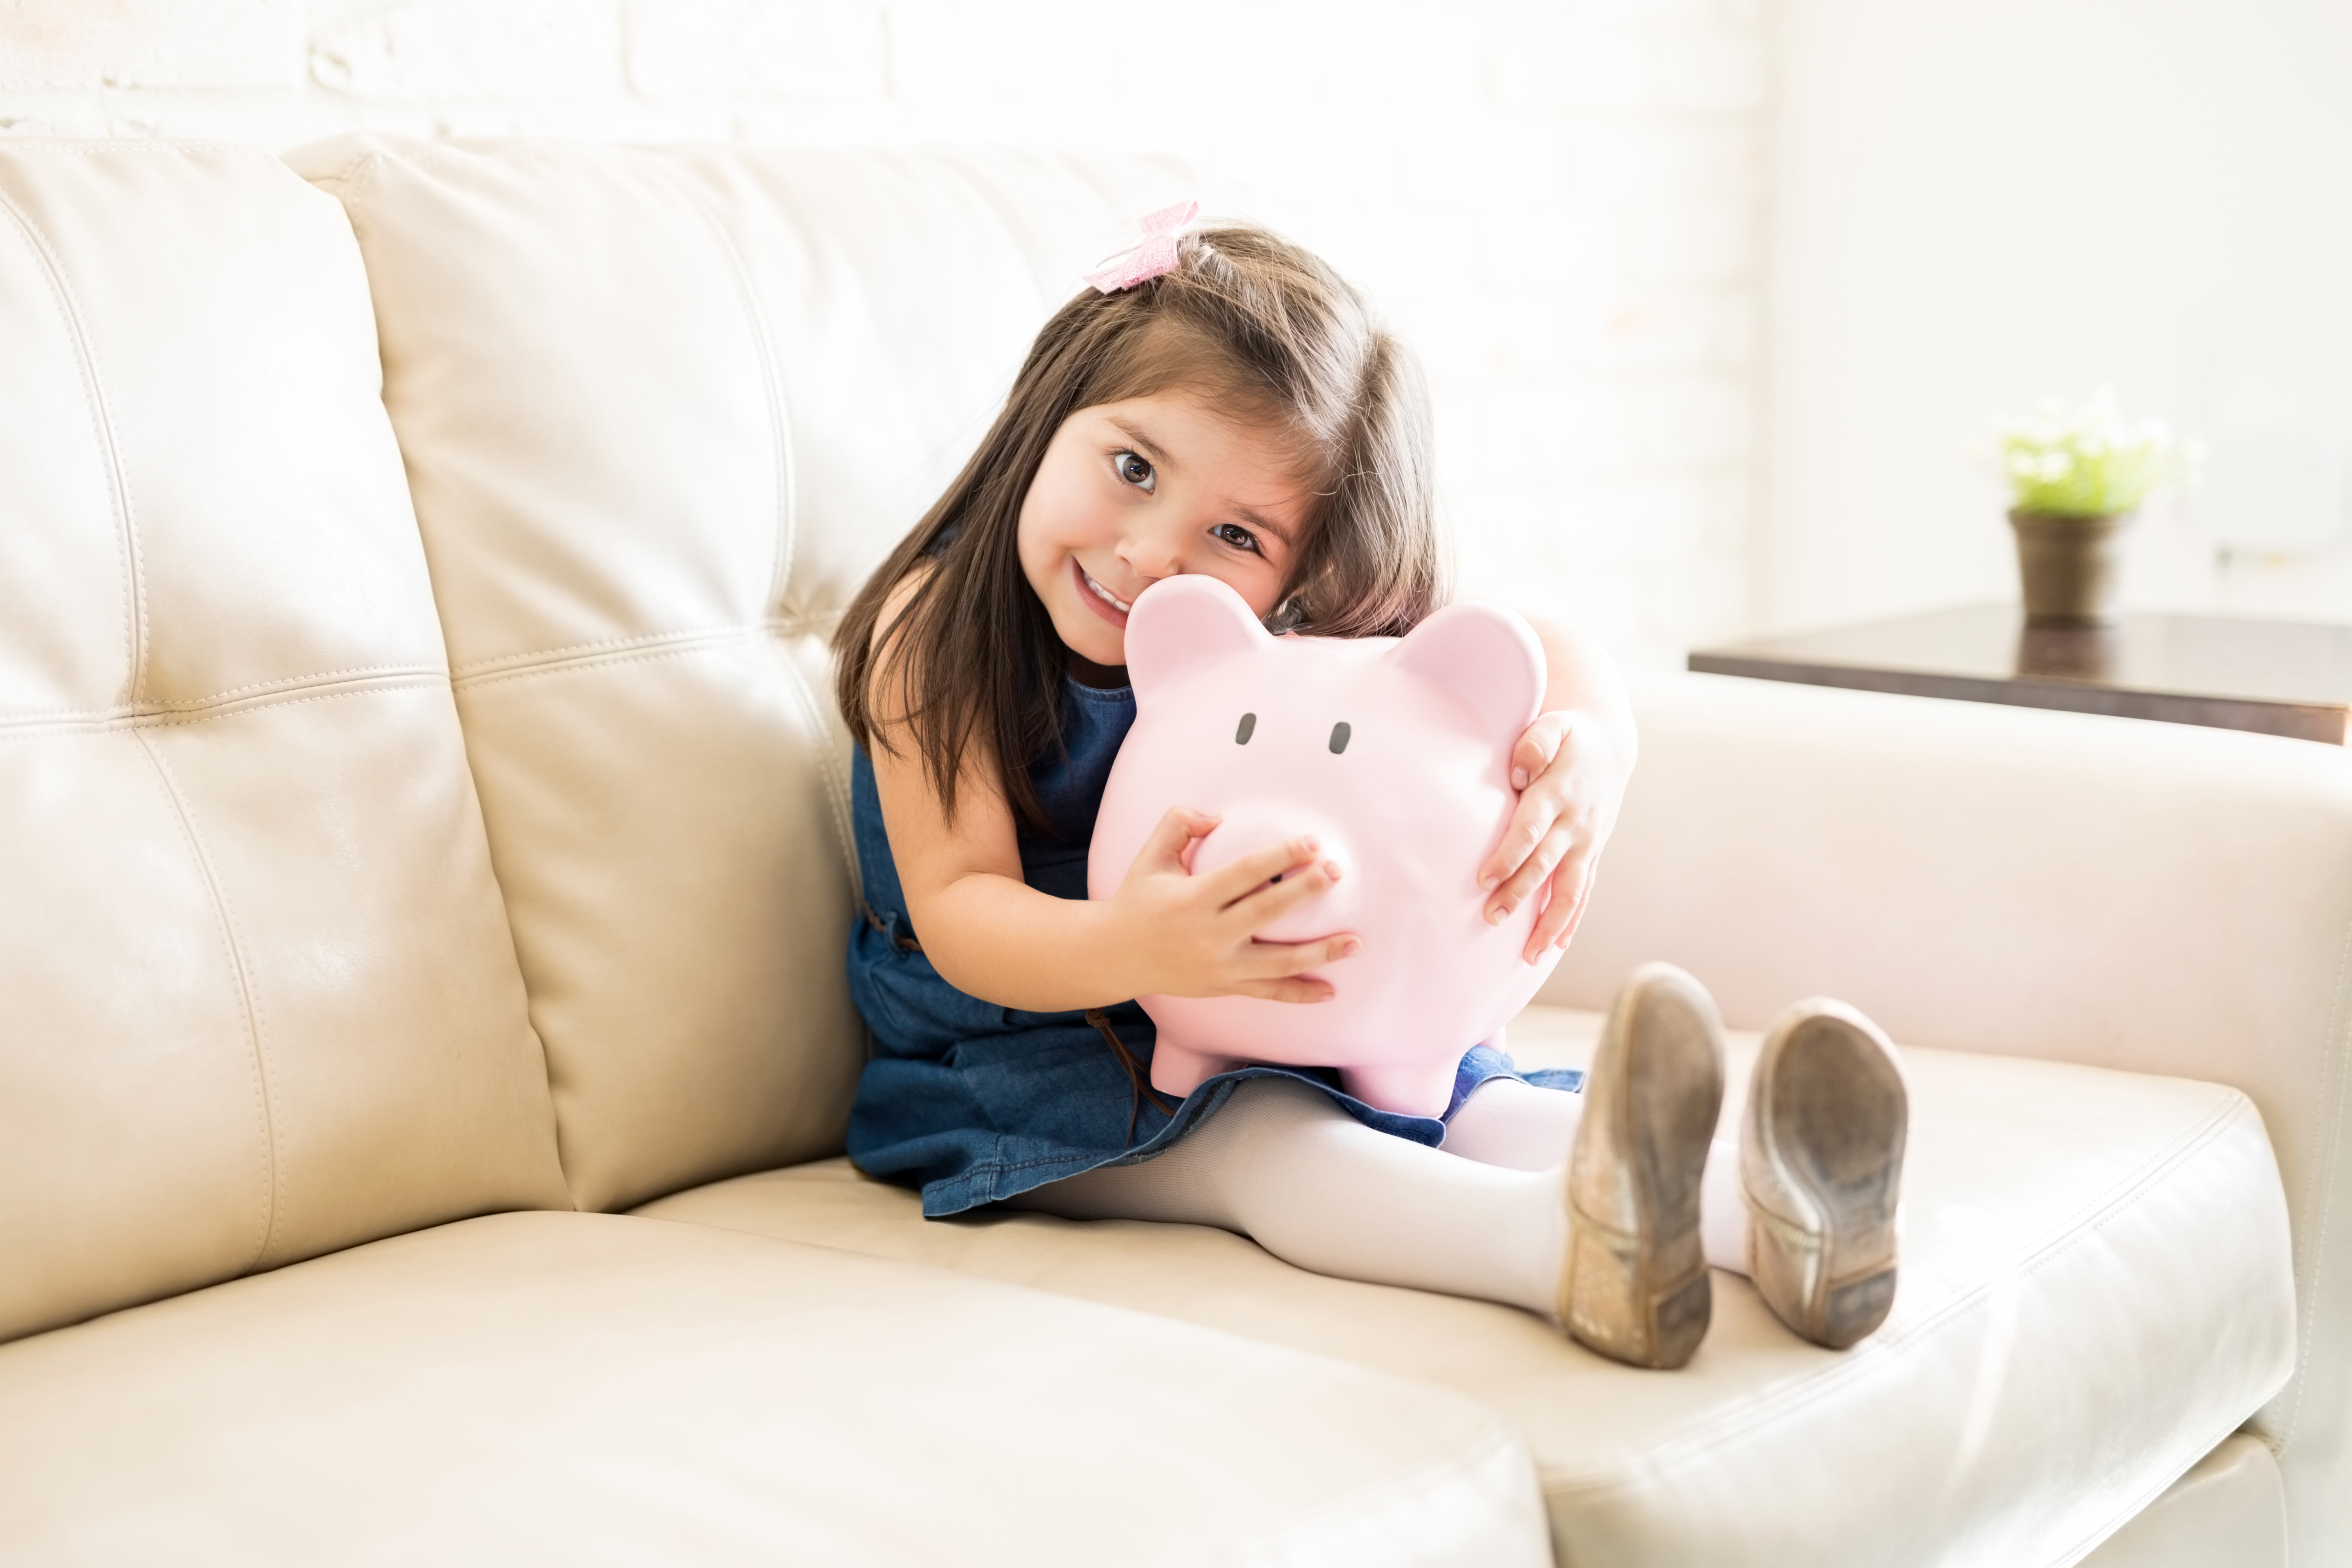 how to teach young kids about money, how to teach kids financial concepts,  best way to teach children about money, first alliance credit union